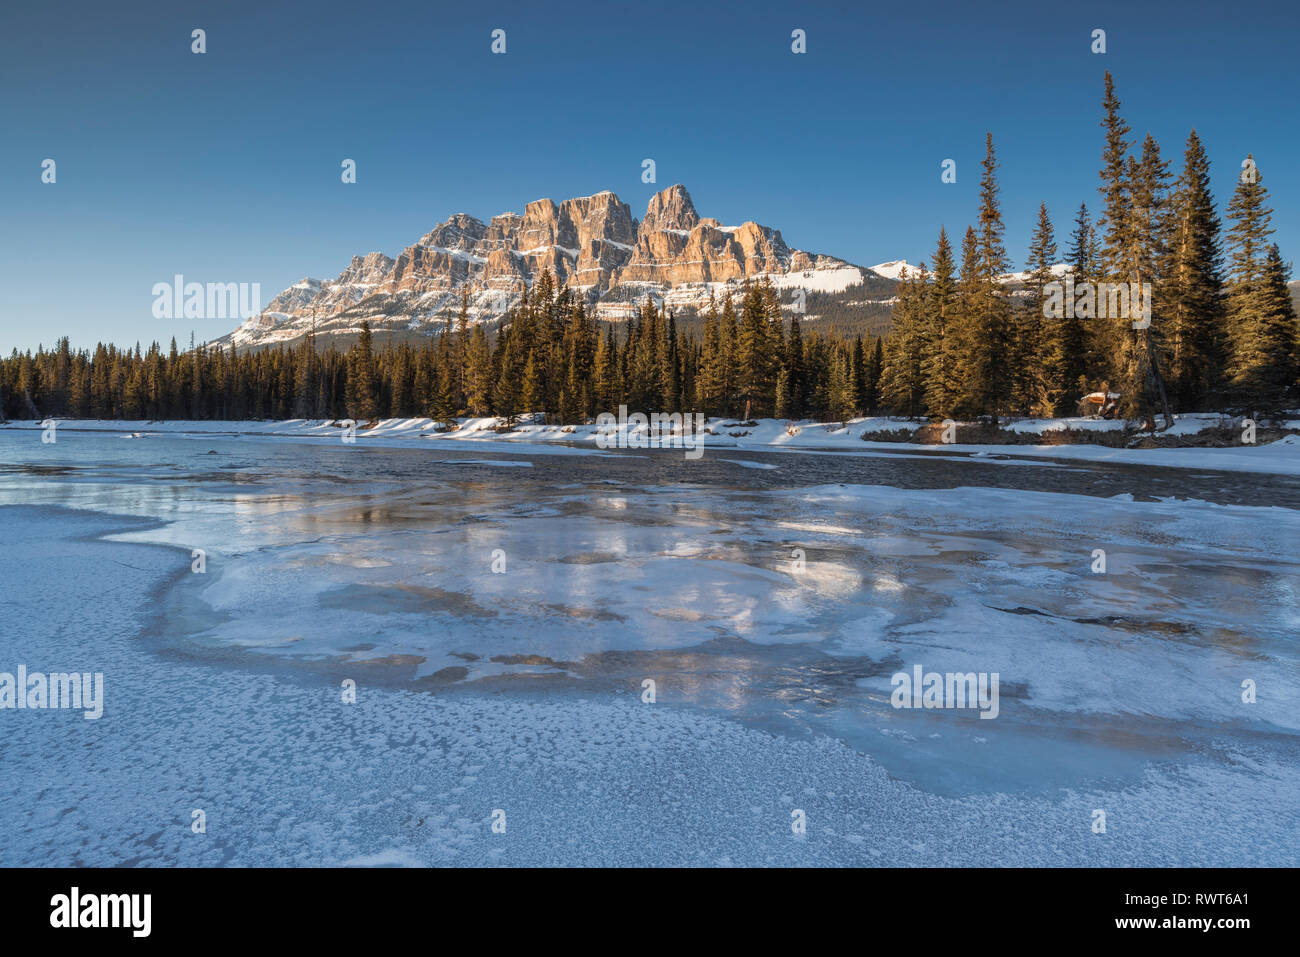 Castle Mountain in winter at sunset with frozen Bow River, Banff National Park, Canada, Canadian Rockies - Stock Image